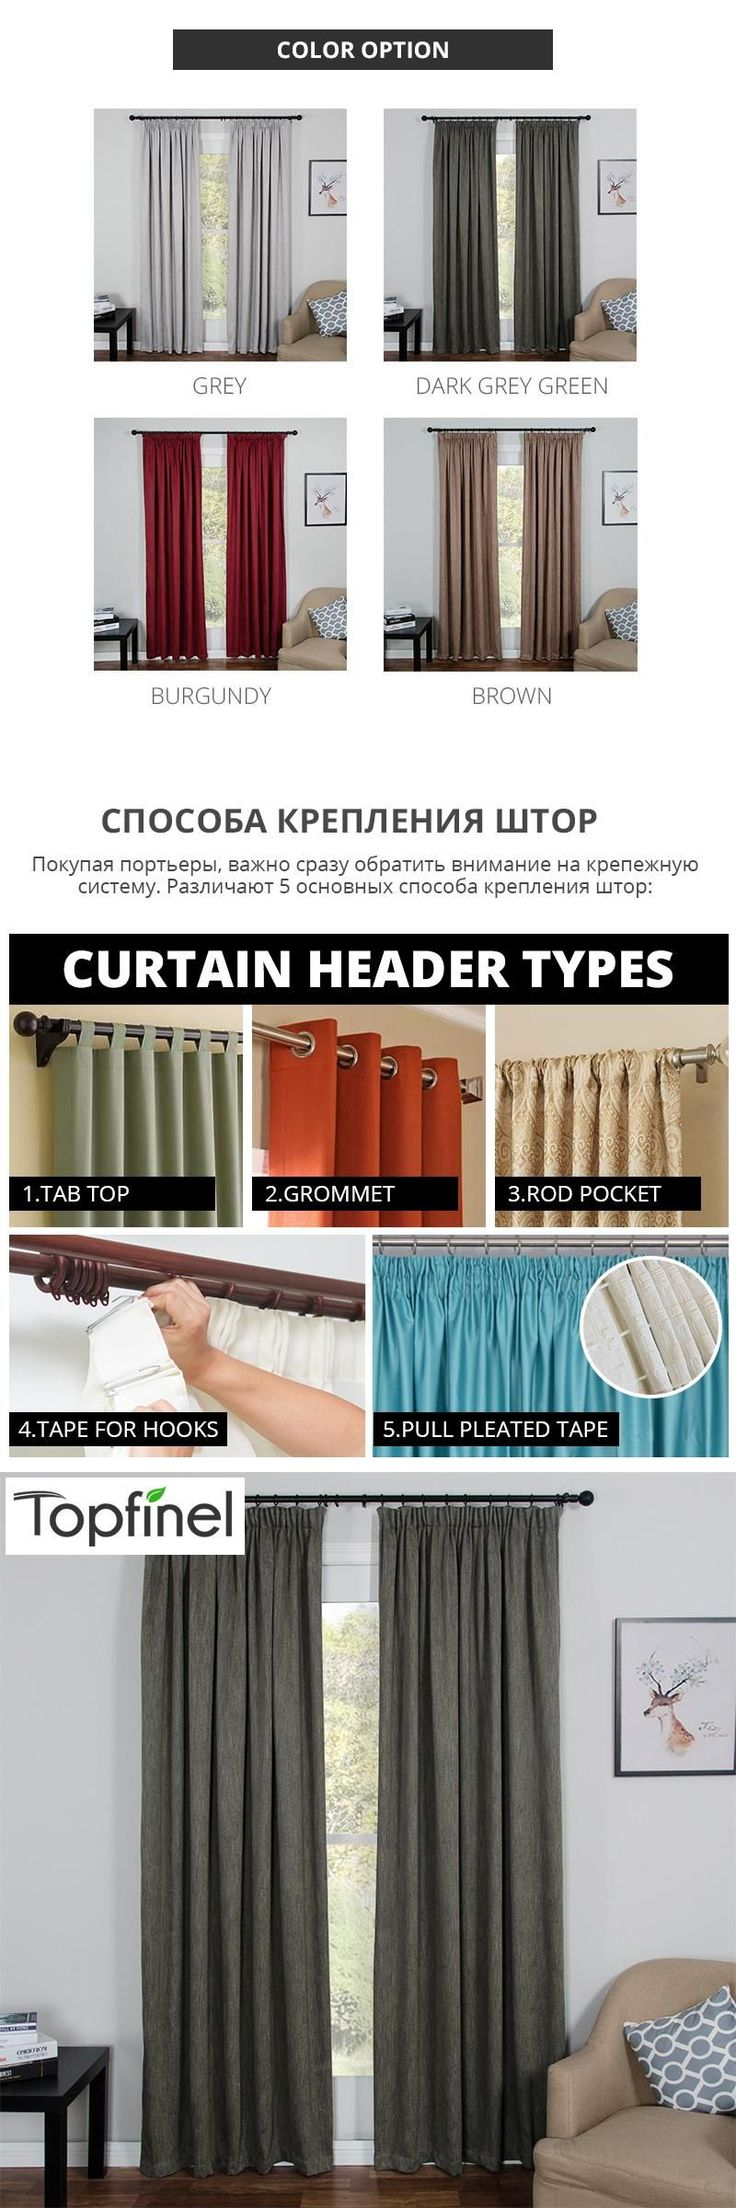 Topfinel Brand New Thick Modern Blackout Curtains for Living Room Bedroom Door Window Curtains Panel Drapes Window Treatments